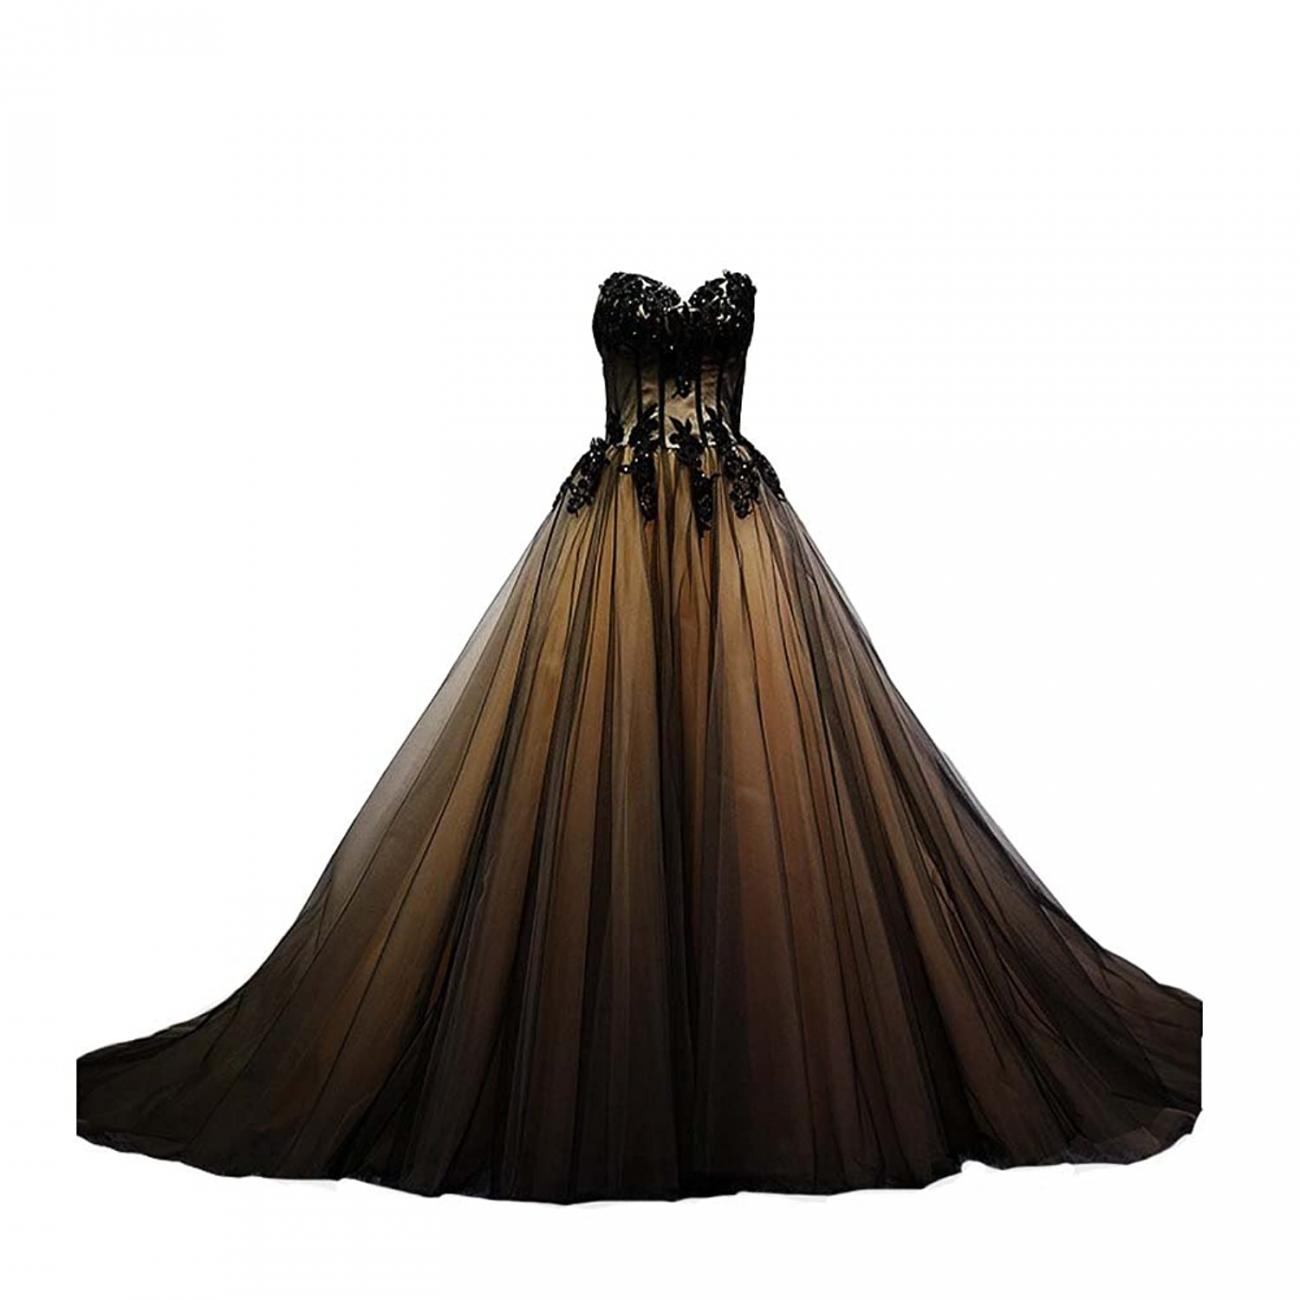 Tulle Zipper Gothic